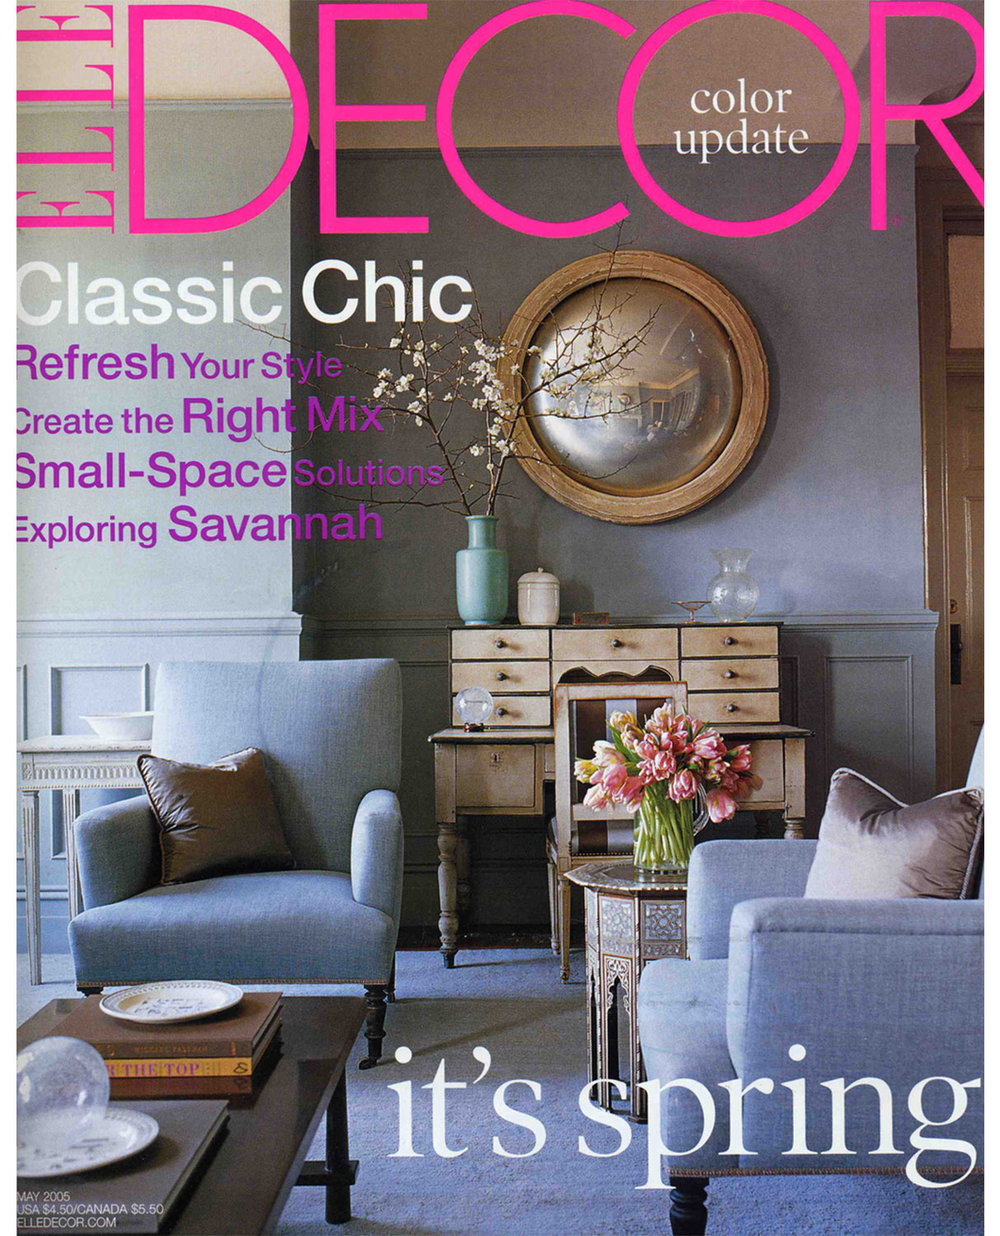 elle-decor-cover_alemanmoore.jpg